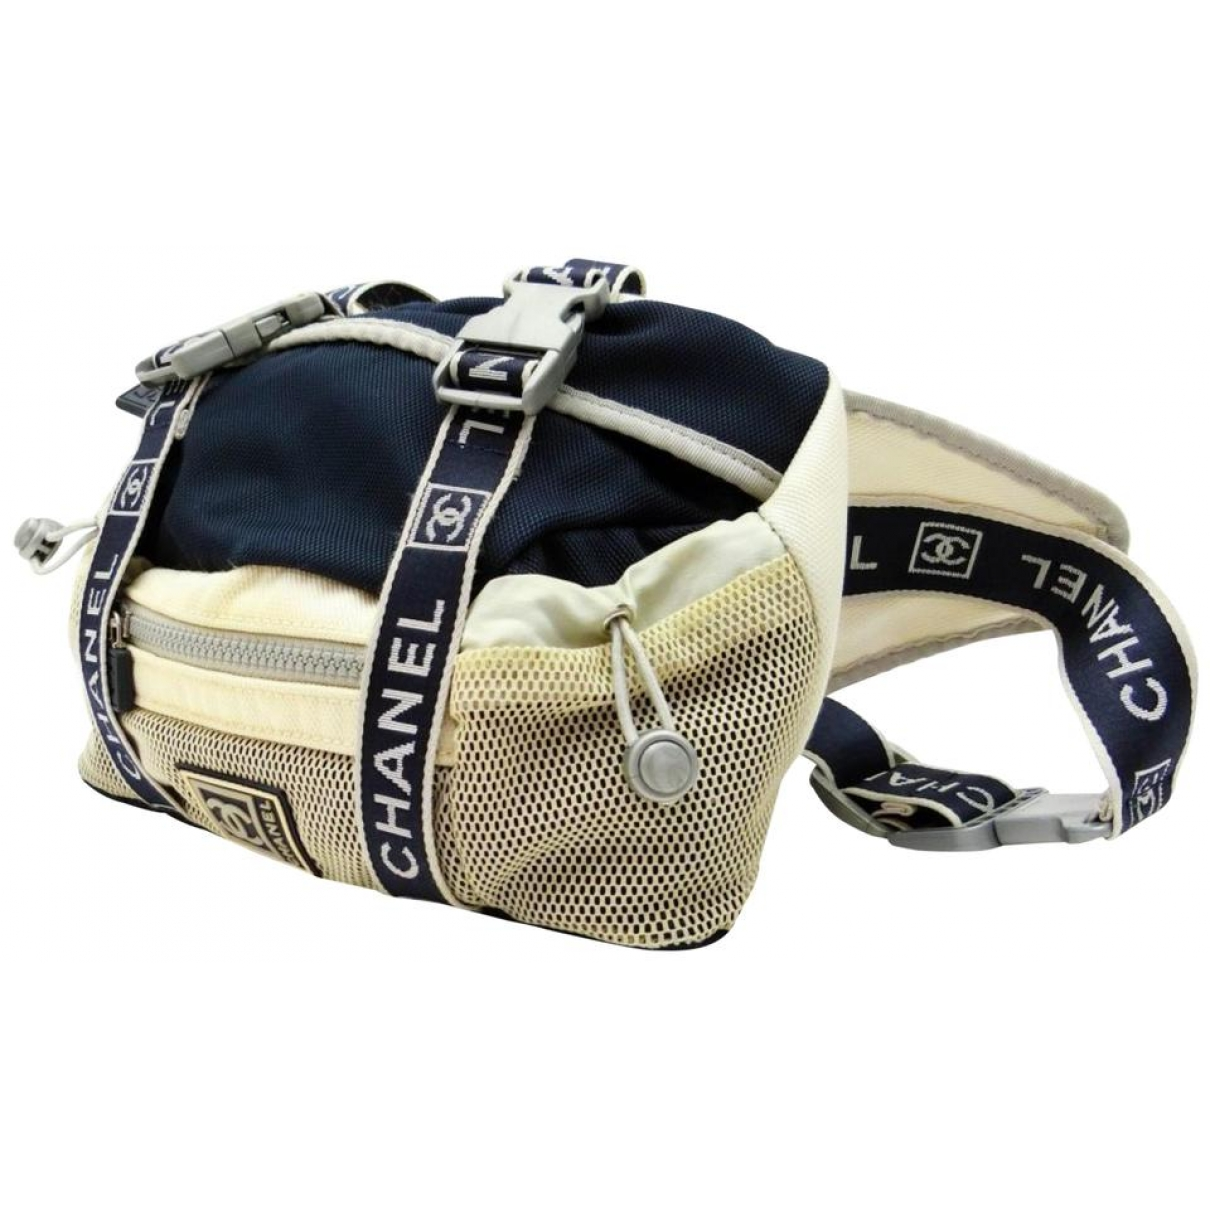 Chanel navy Cloth TRAVEL BAGS